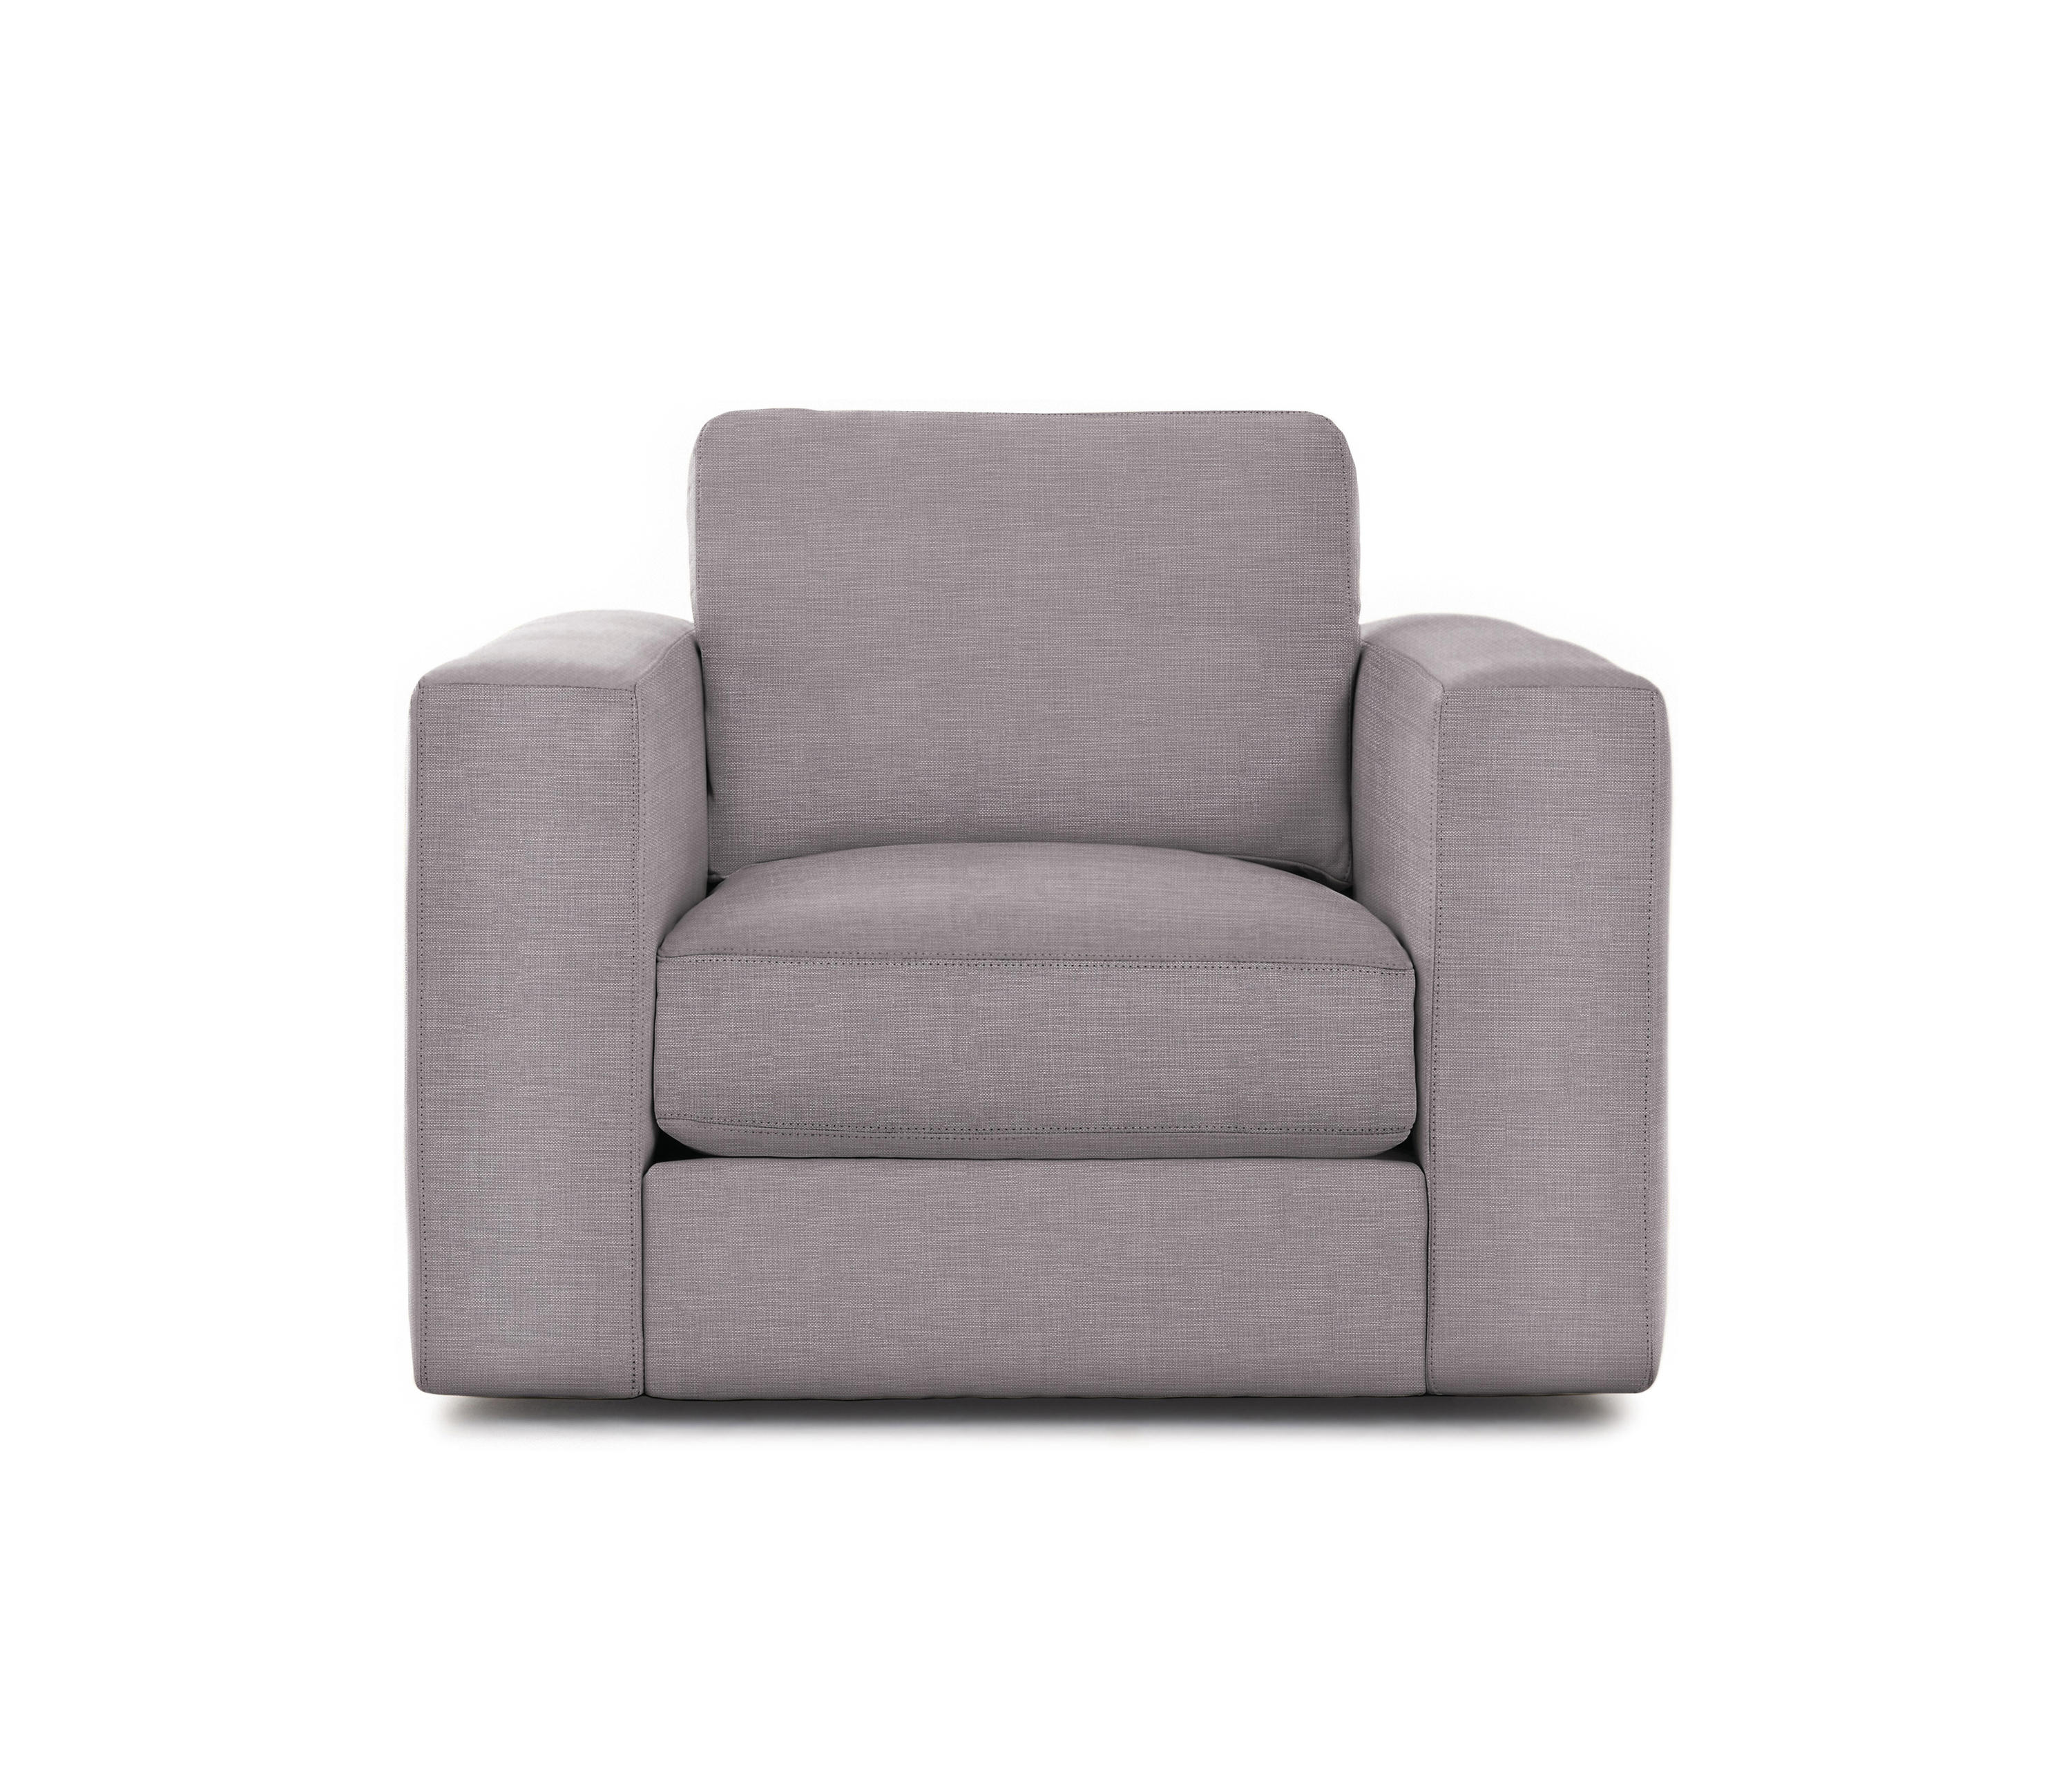 Reid Armchair in Fabric | Architonic